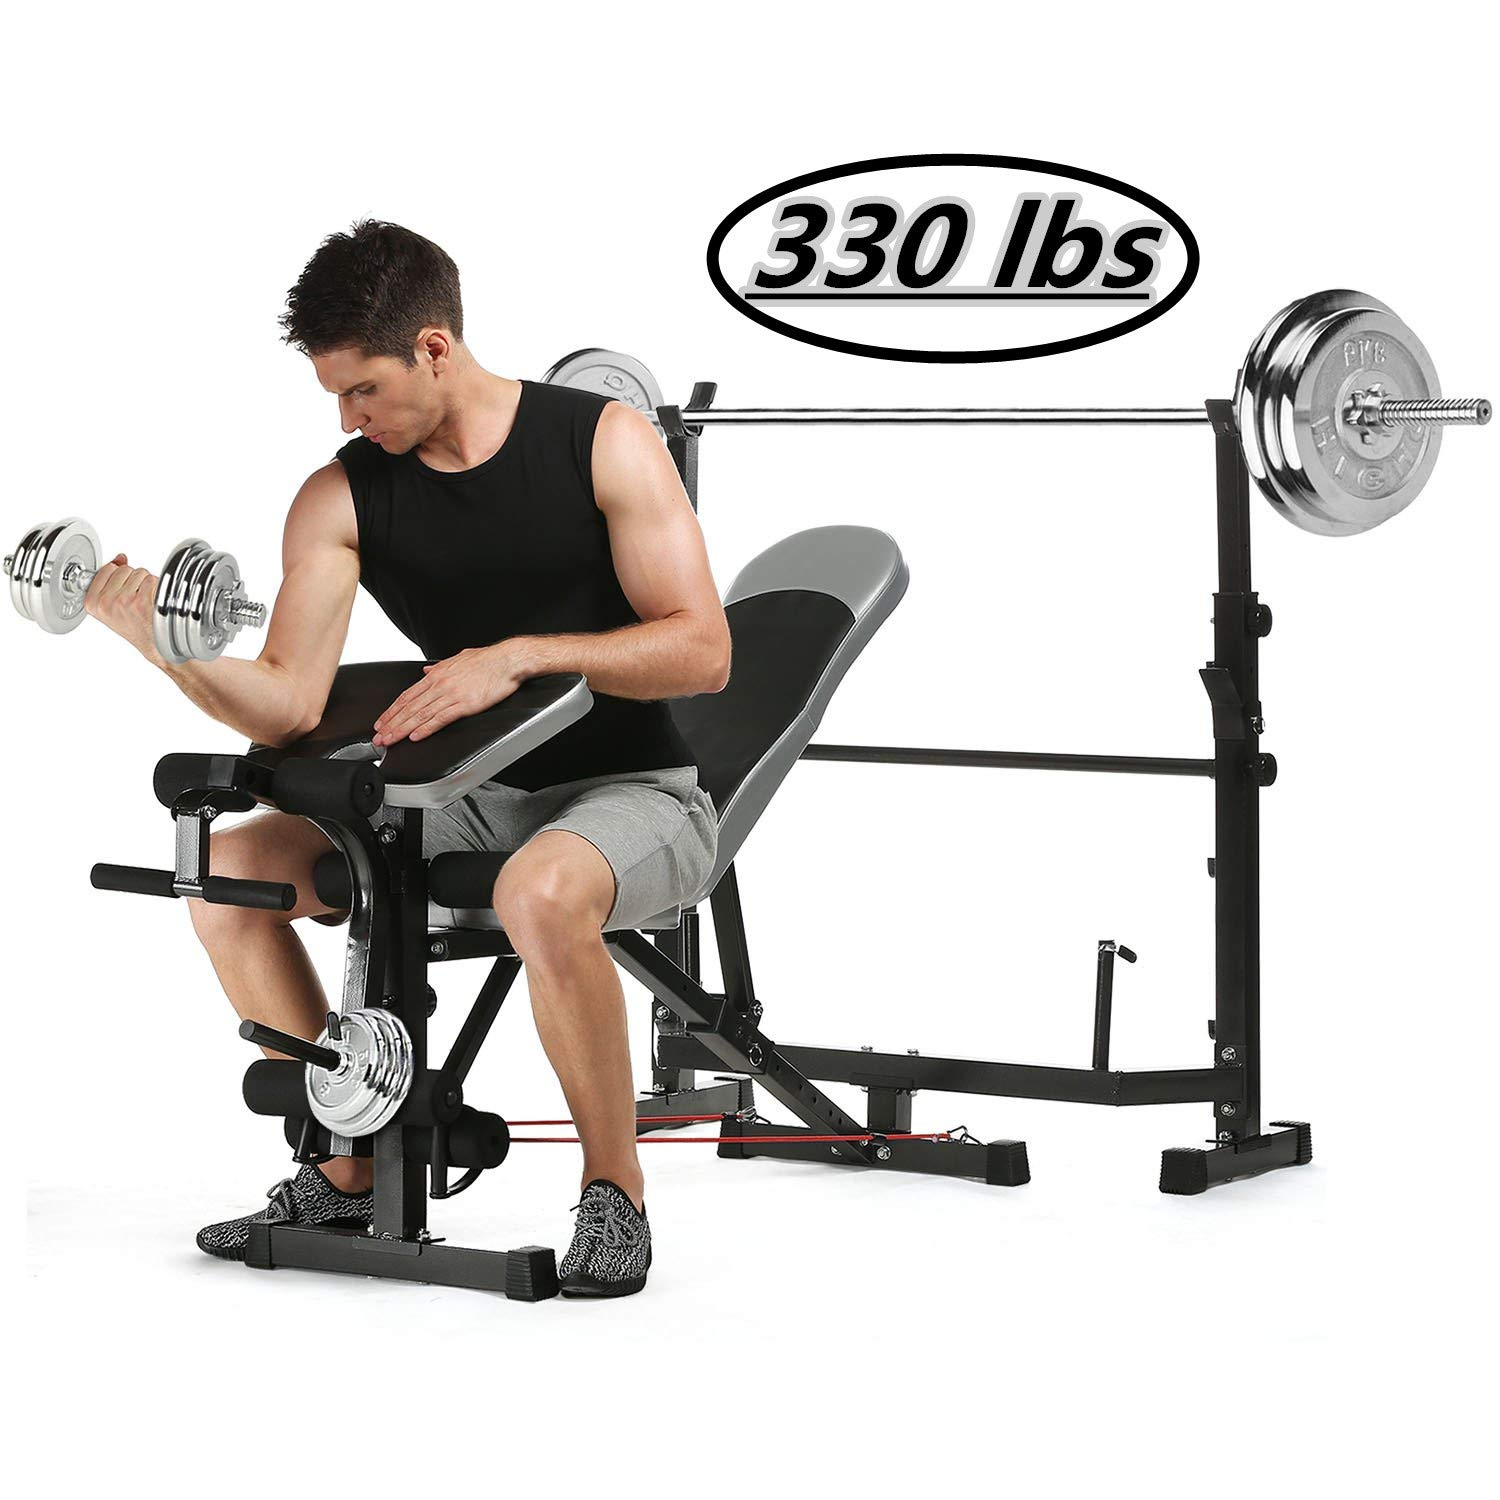 Kepteen 330lbs Adjustable Olympic Weight Bench with Preacher Curl, Leg Developer, Multi-Functional Weight Bench Set Power Tower Workout Dip Station for Indoor Exercise US Stock